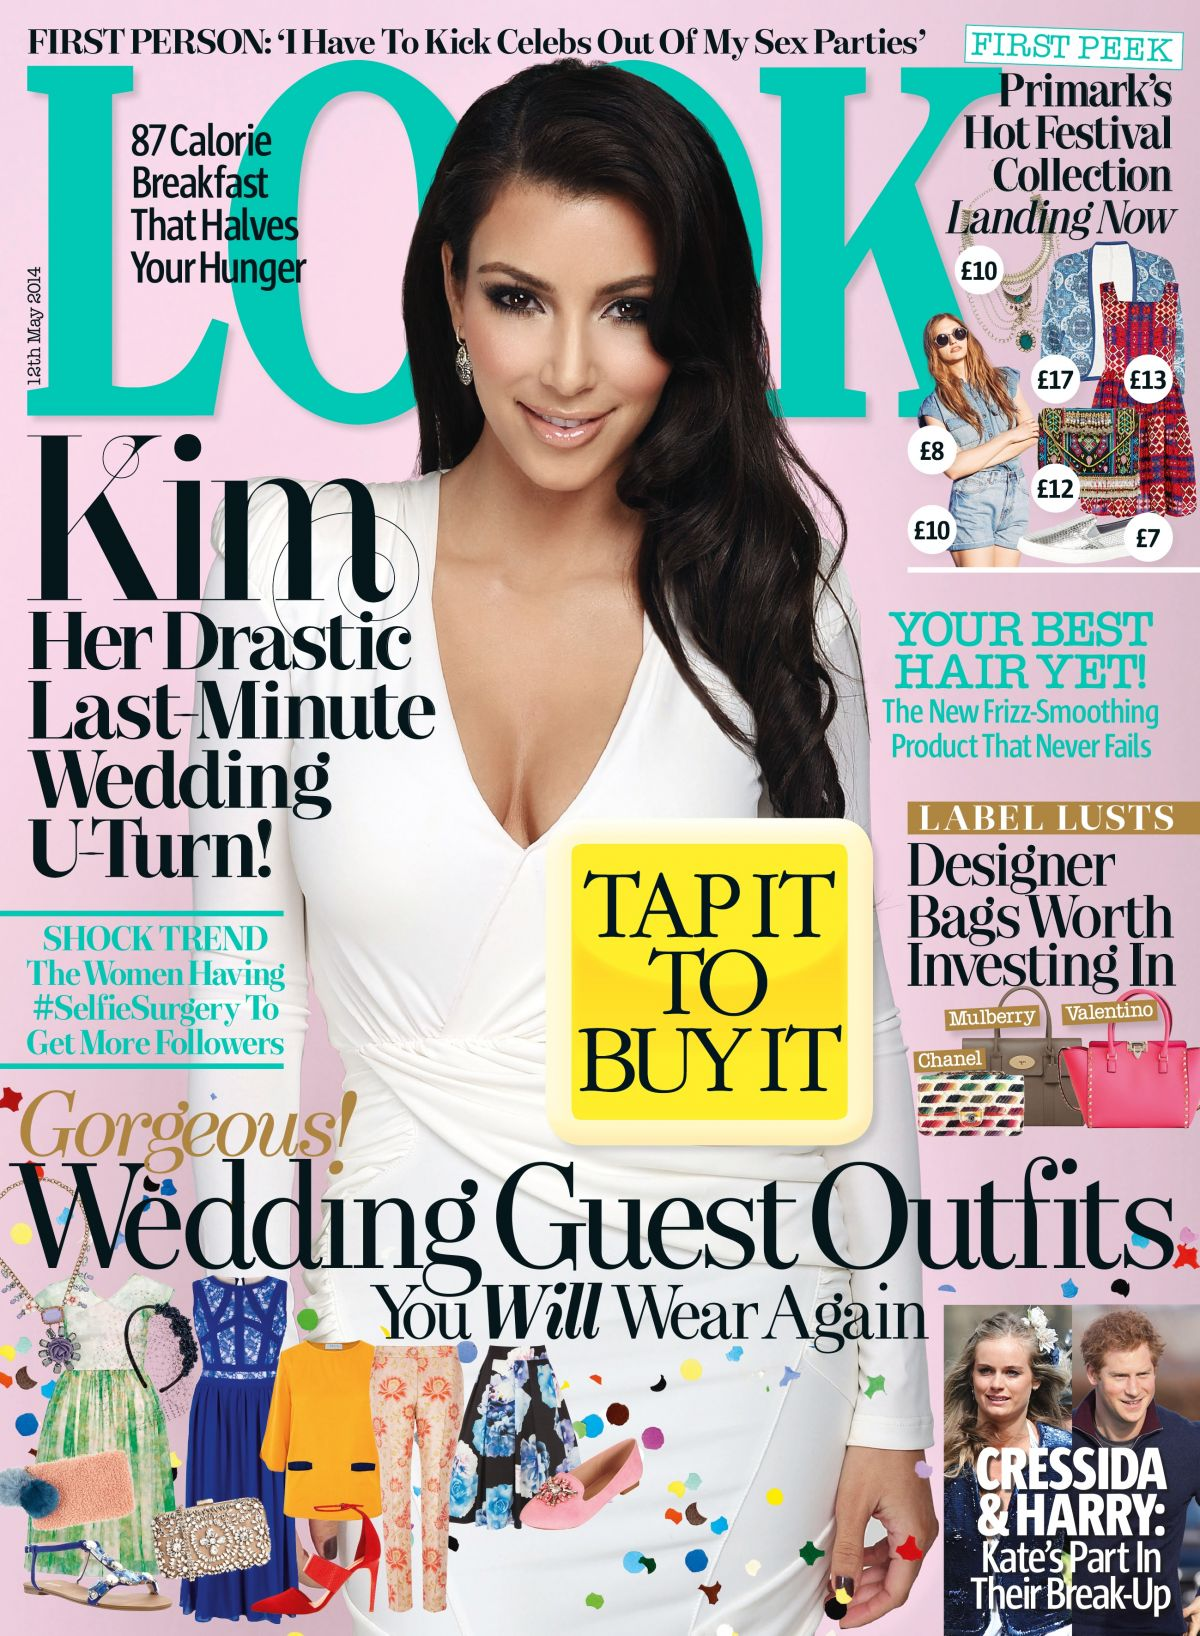 KIM KARDASHIAN at the Cover of Look Magazine, May 2014 Issue